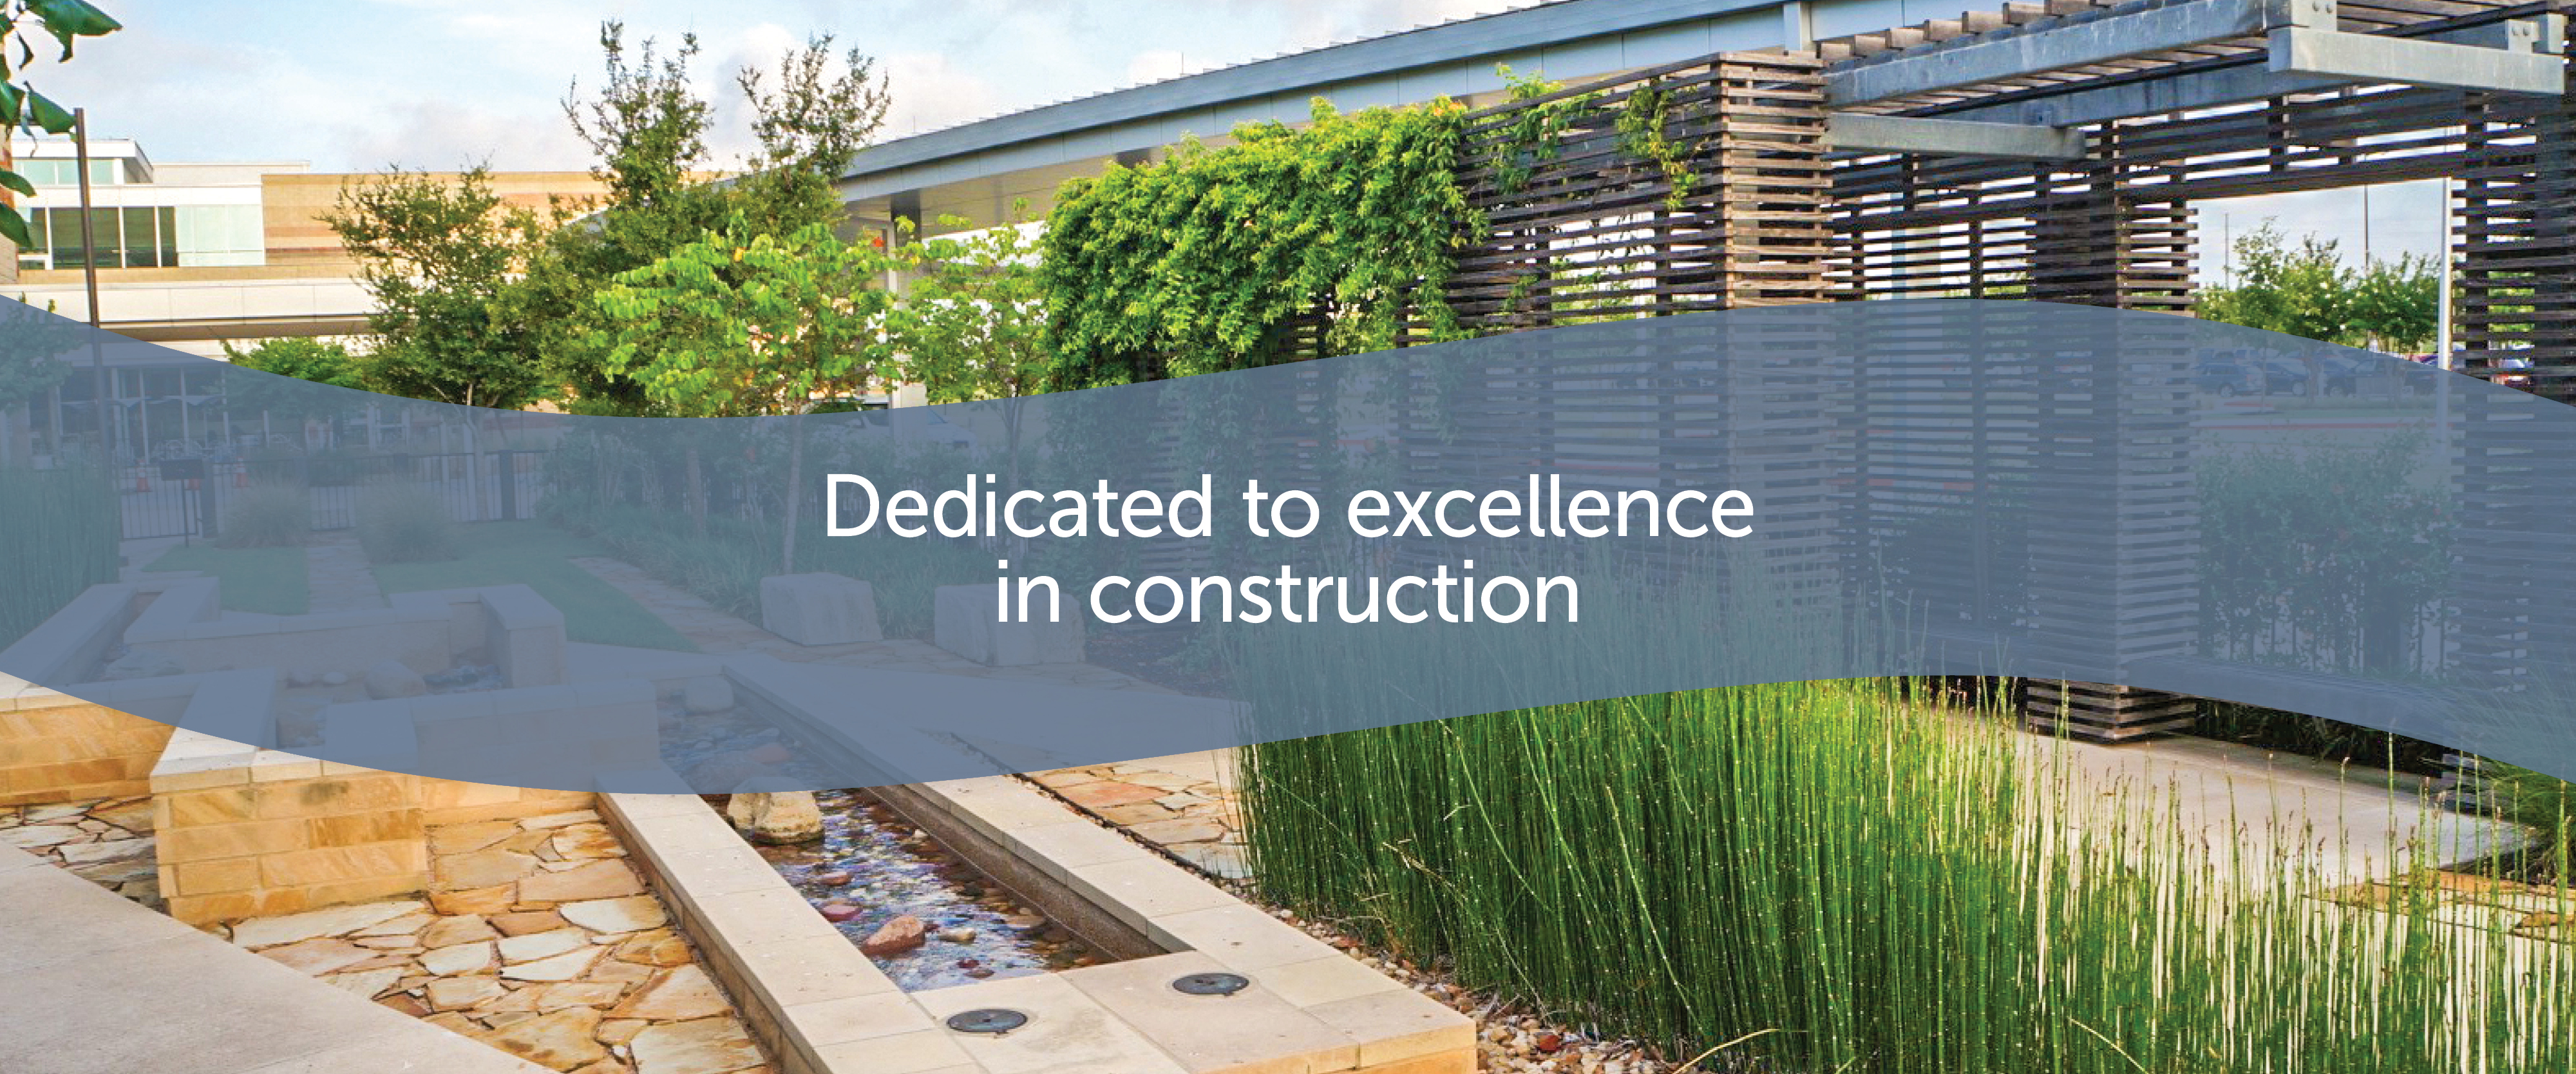 Choate USA - Excellence in Construction